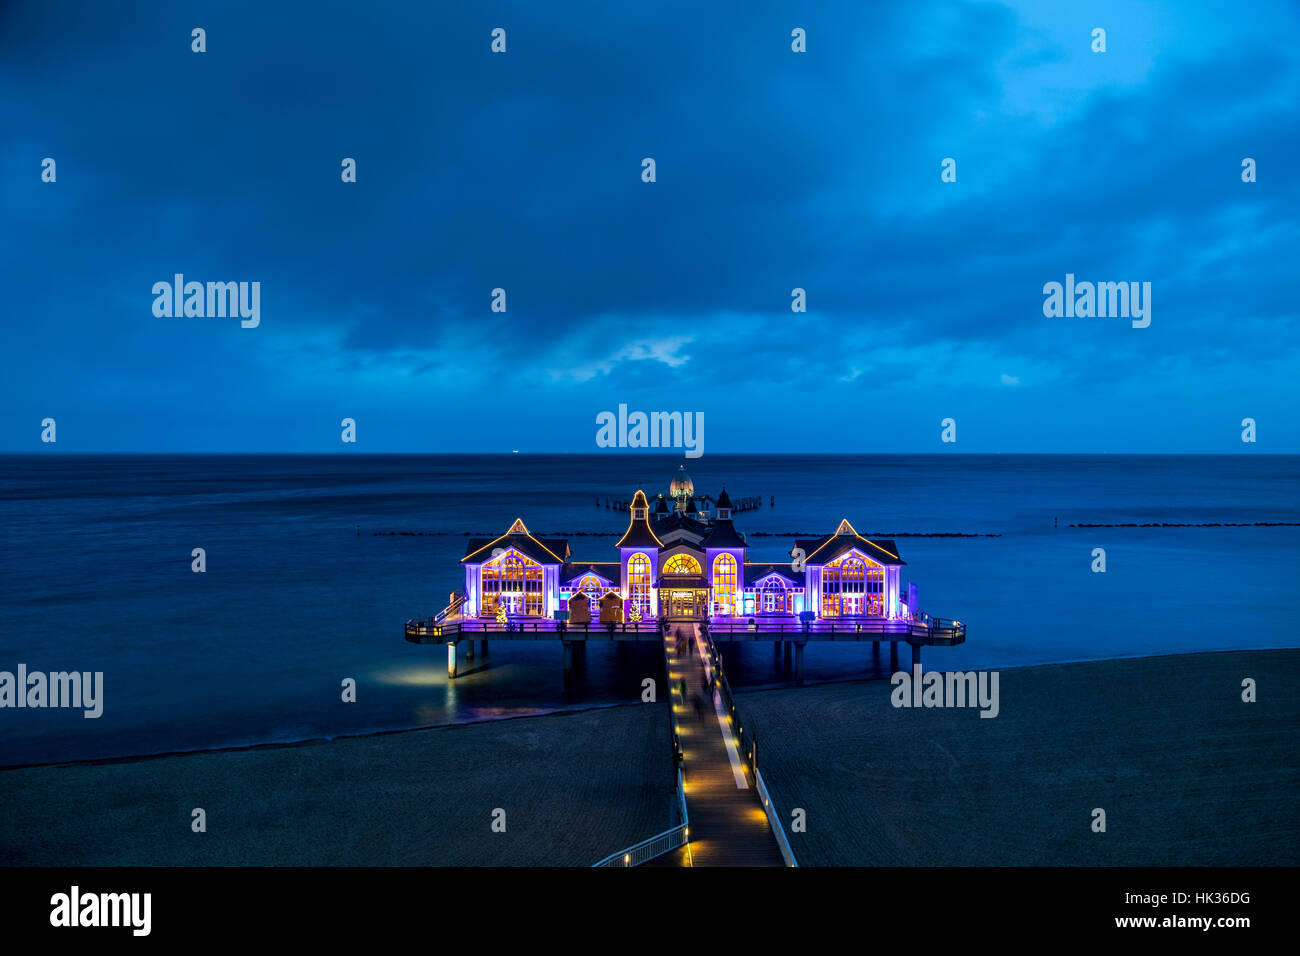 The pier from the , seaside resort, Sellin on the island of RŸgen, Germany, Baltic sea, in the evening, illuminated, - Stock Image